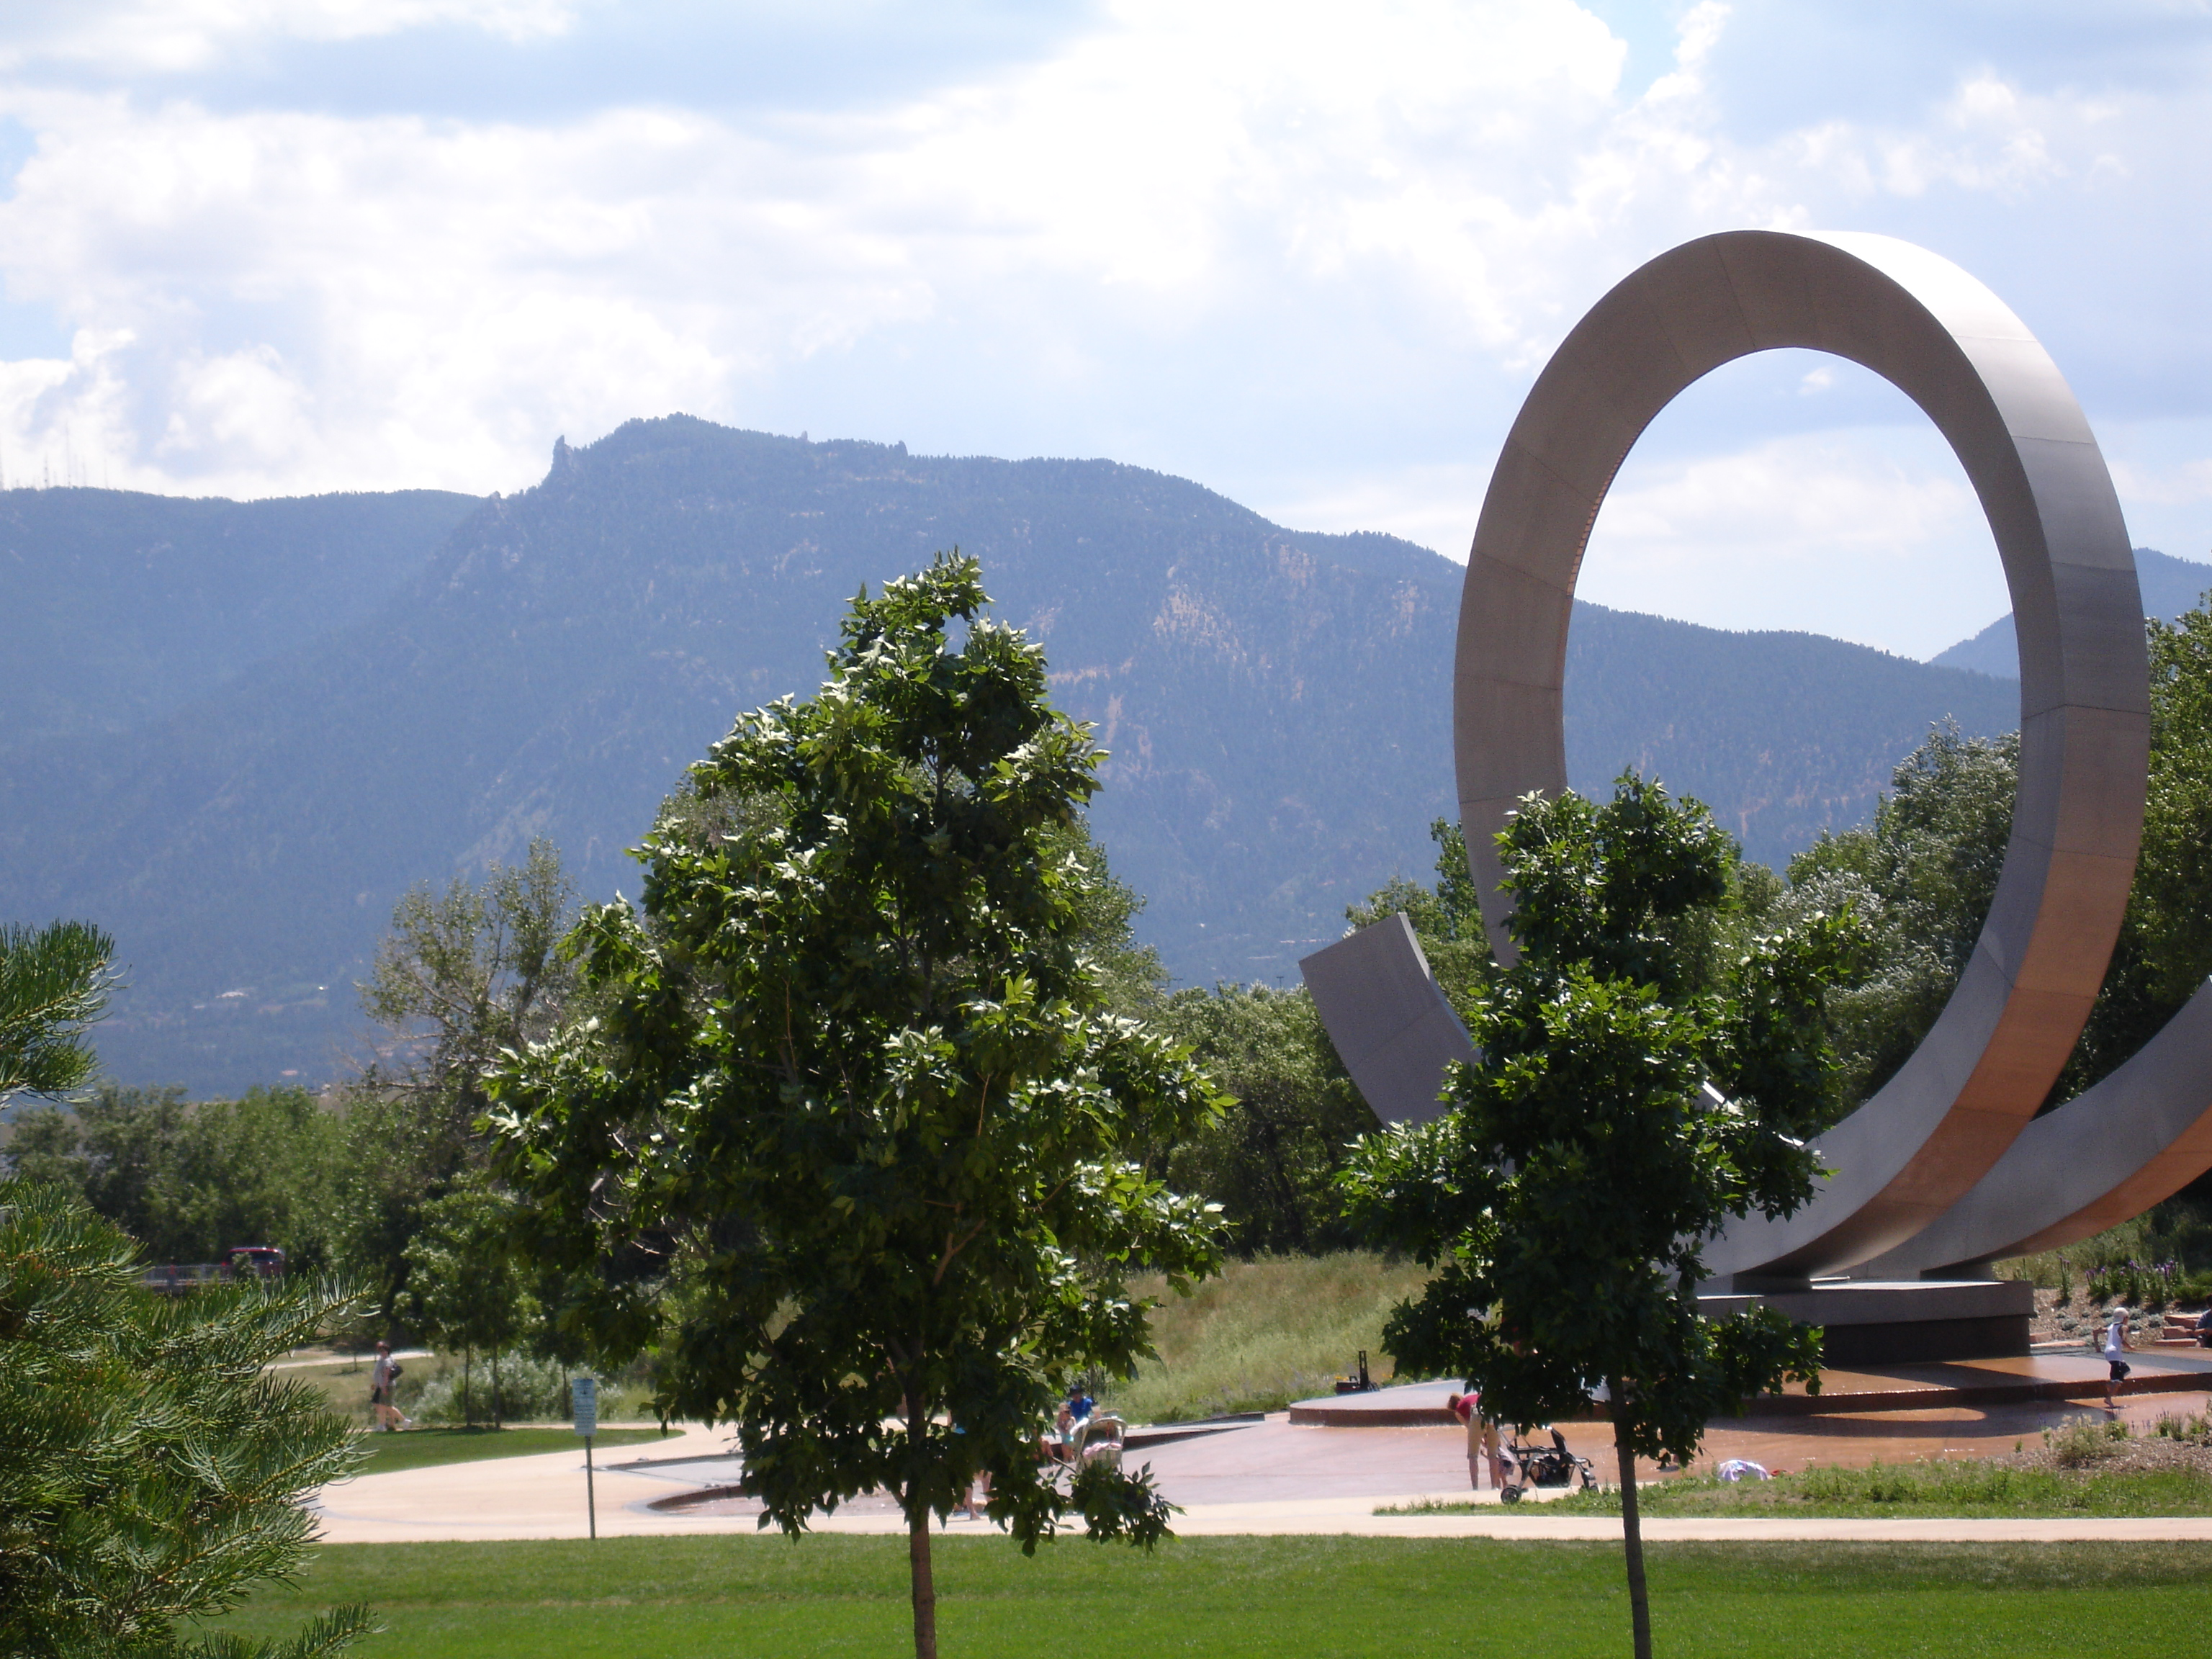 America the Beautiful Park in Colorado Springs, CO